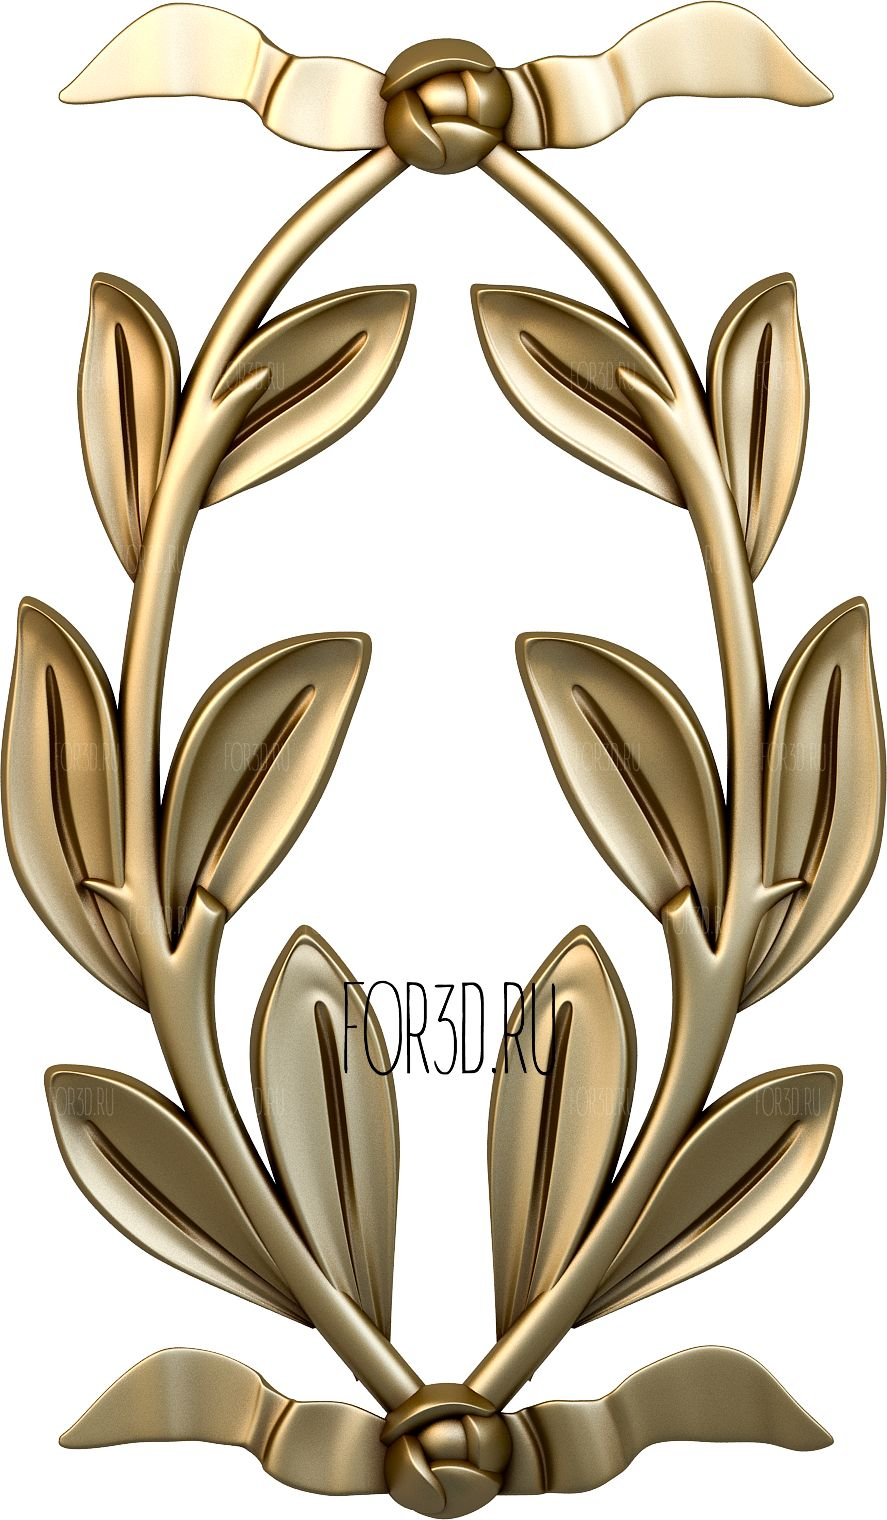 Decor vertical 0419 3d stl модель для ЧПУ